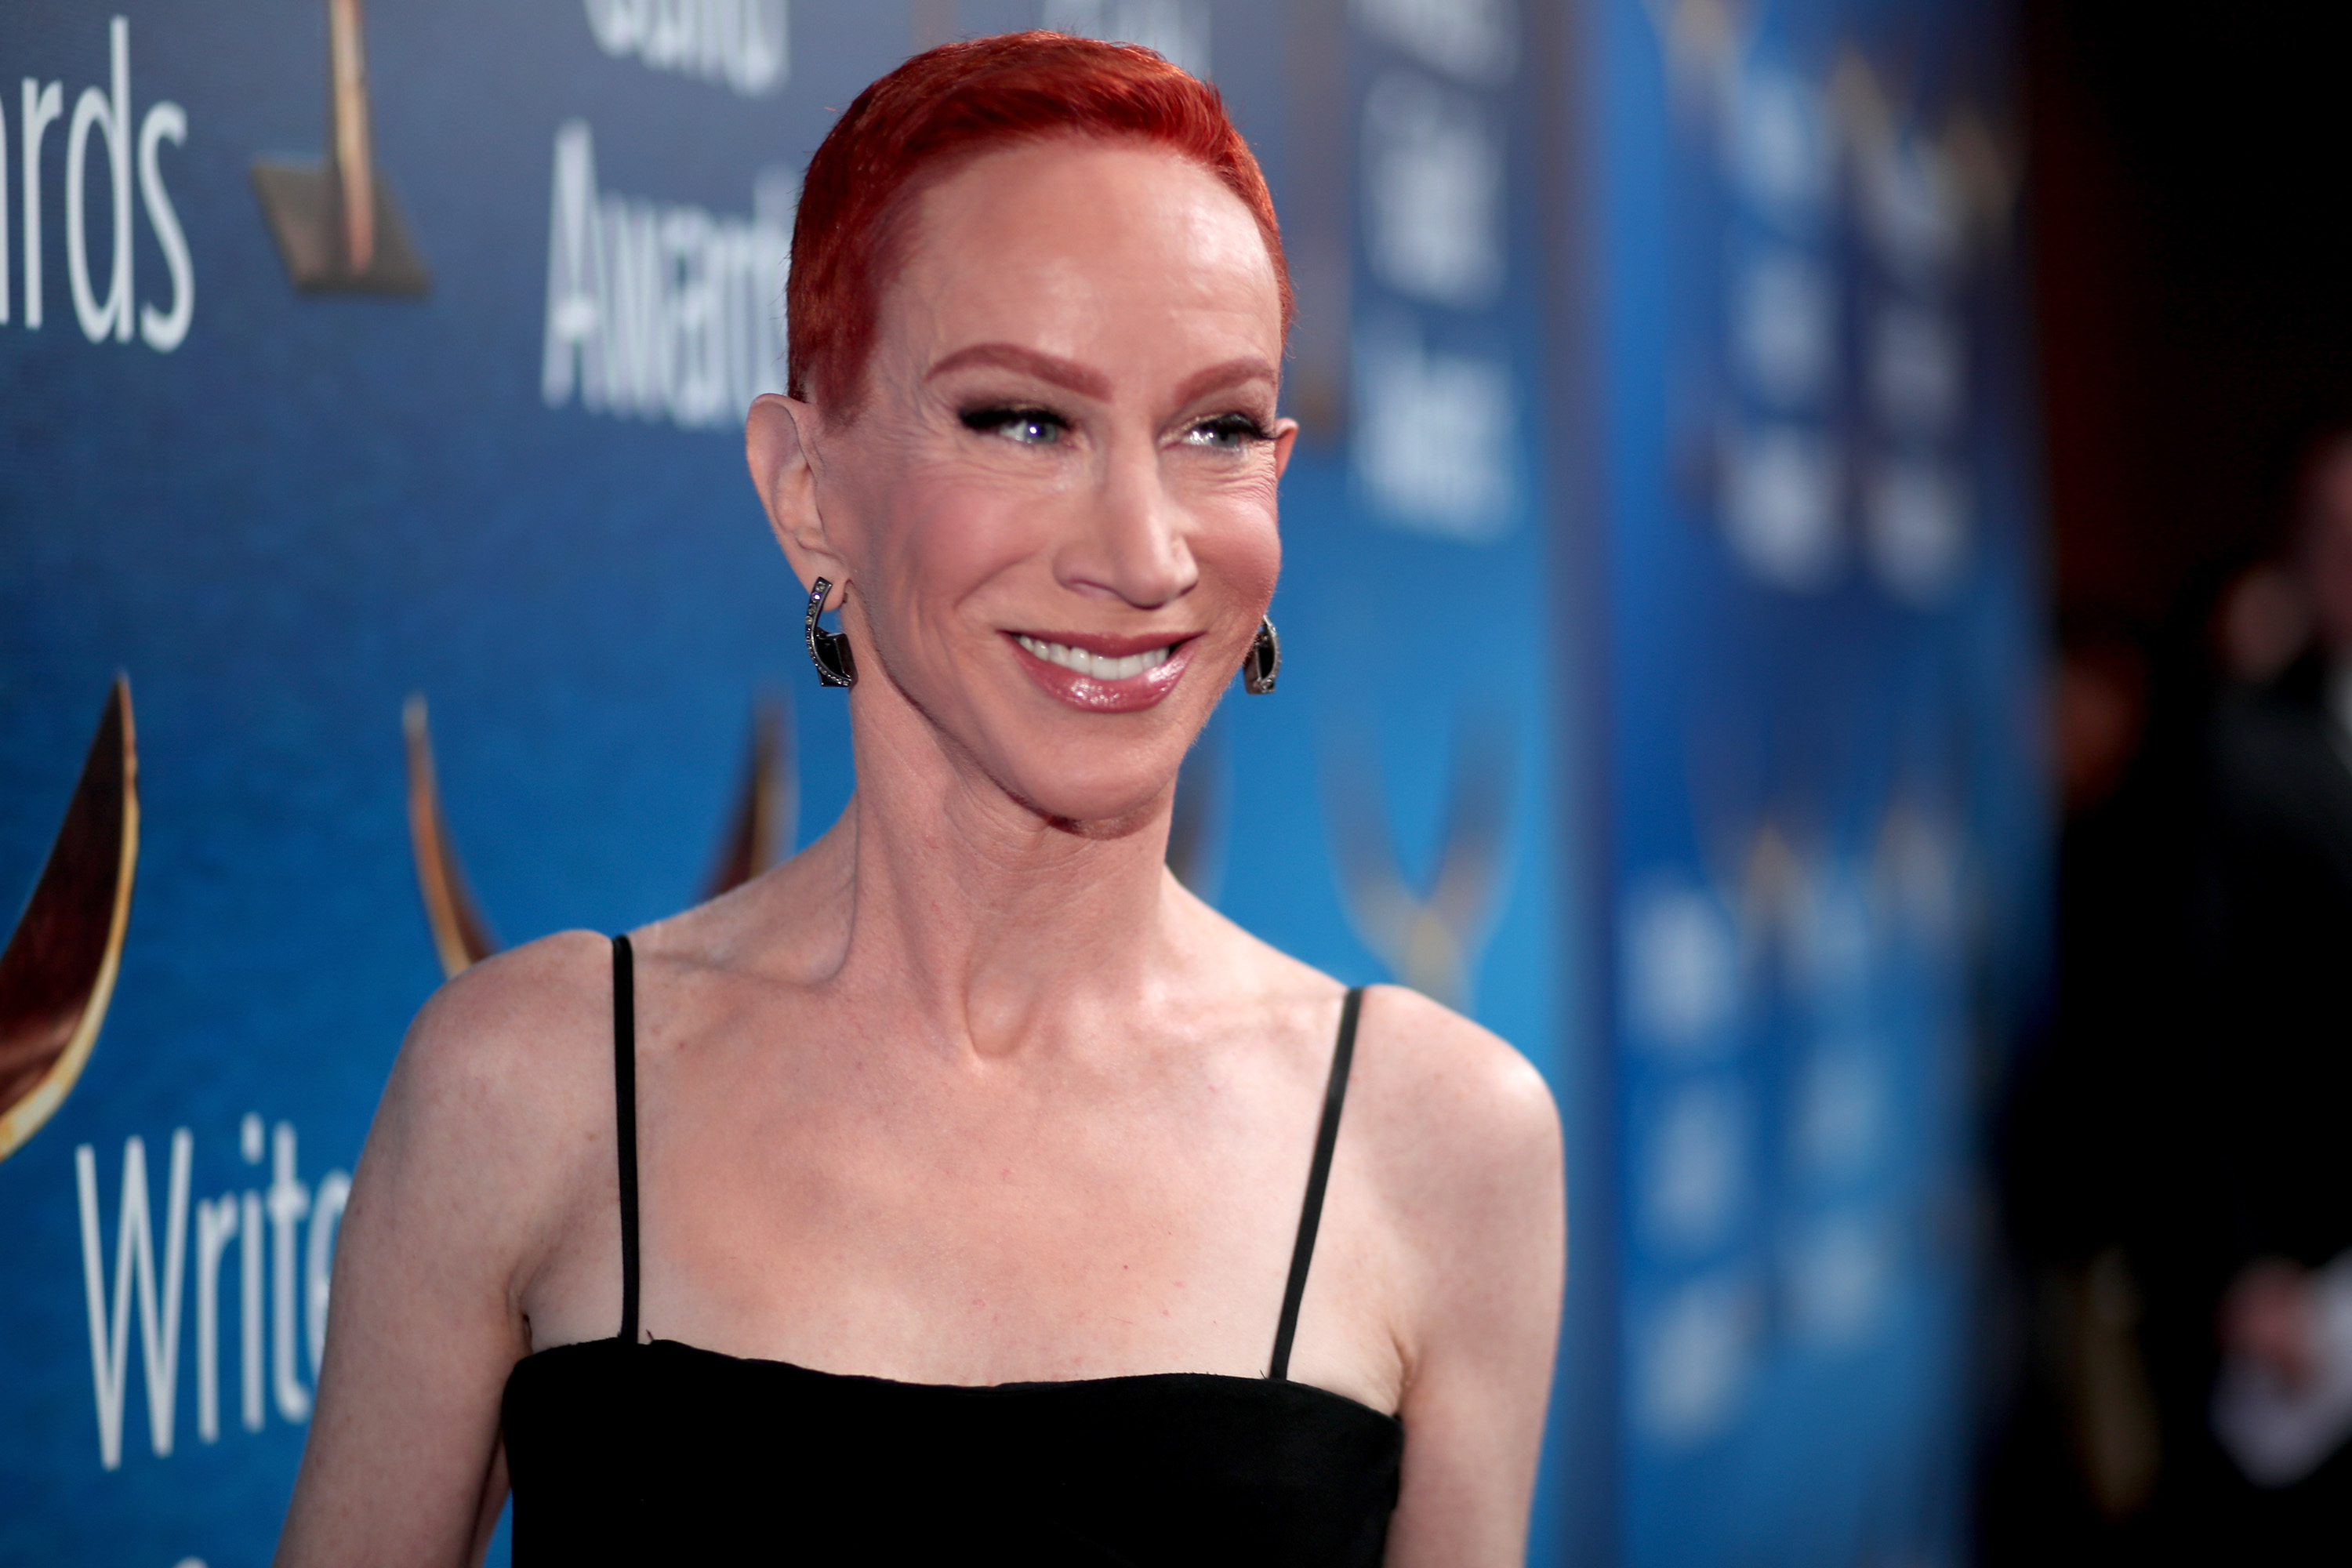 Kathy Griffin attends the 2018 Writers Guild Awards L.A. Ceremony at The Beverly Hilton Hotel on February 11, 2018 in Beverly Hills, California.